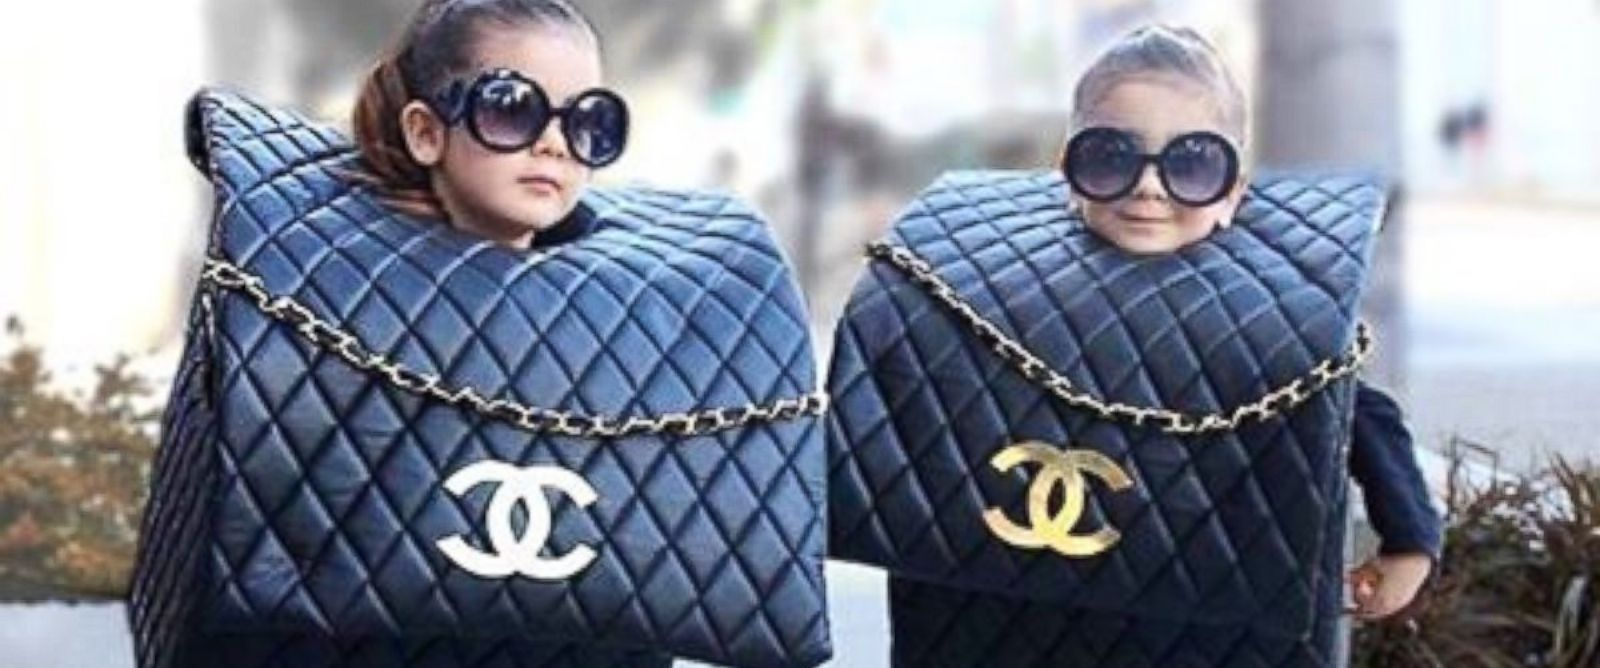 4 year old twins take fashion world and instagram by storm